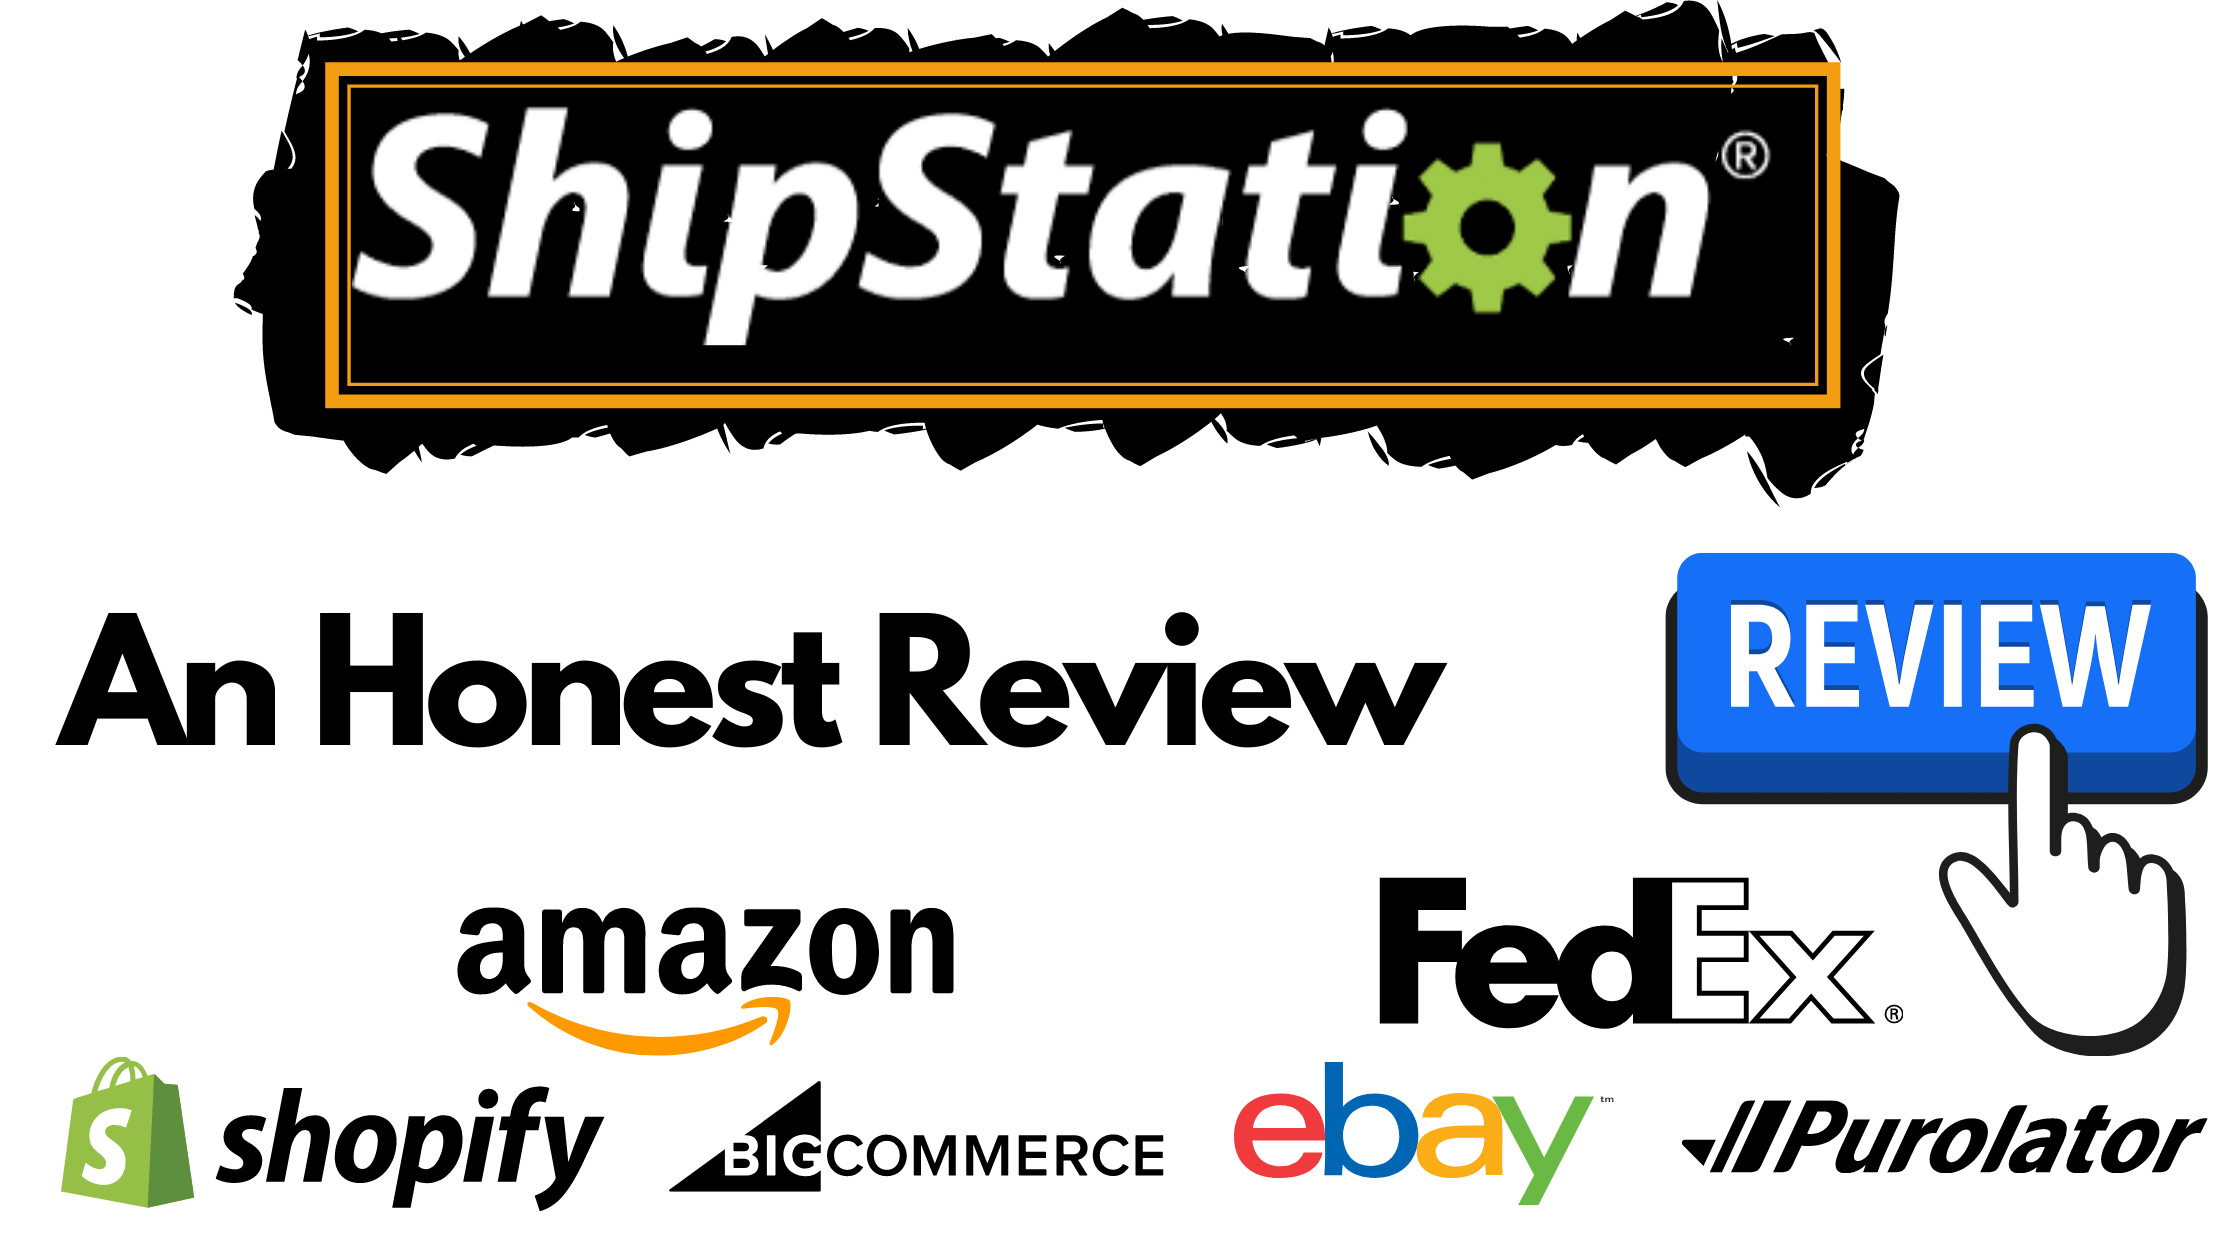 shipstation review